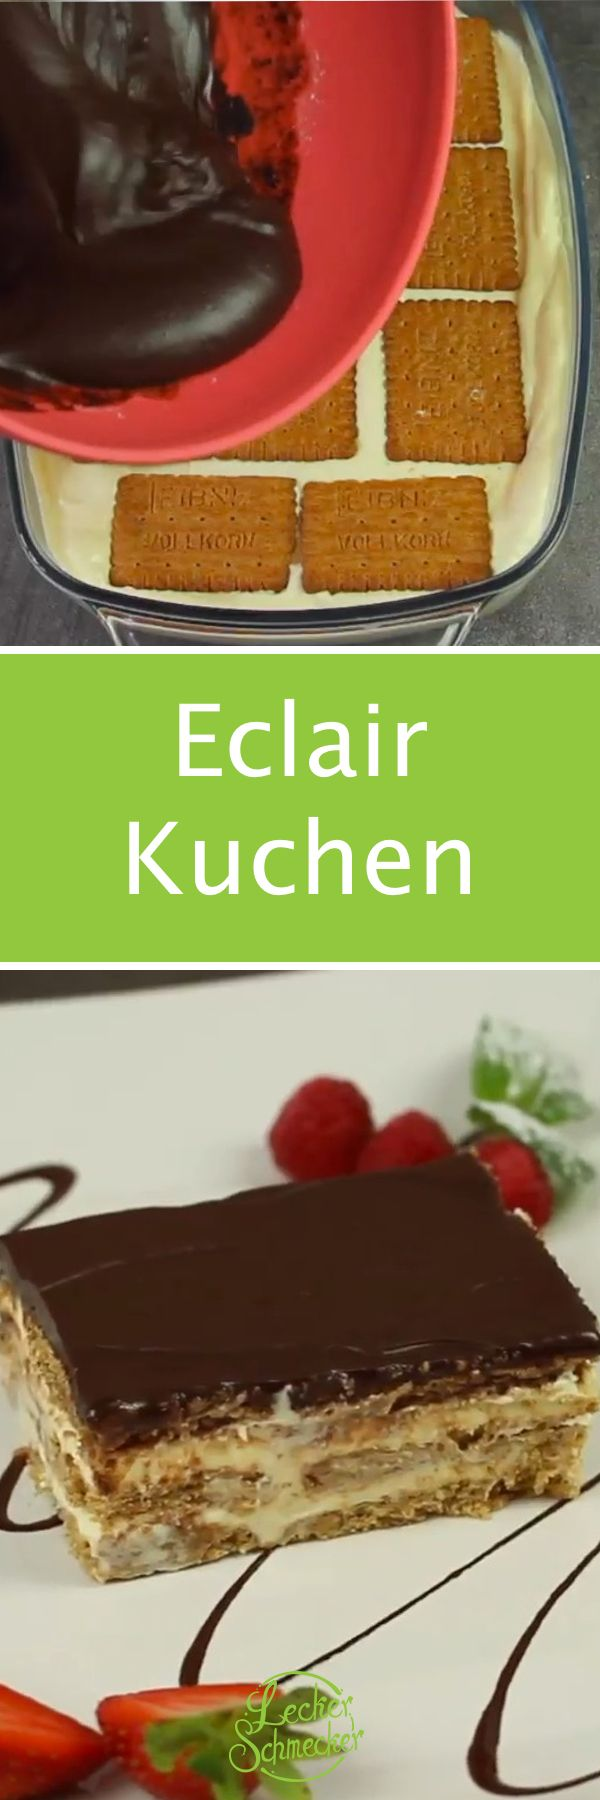 Butterkeks Pudding Kuchen Ohne Backen Images Tagged With